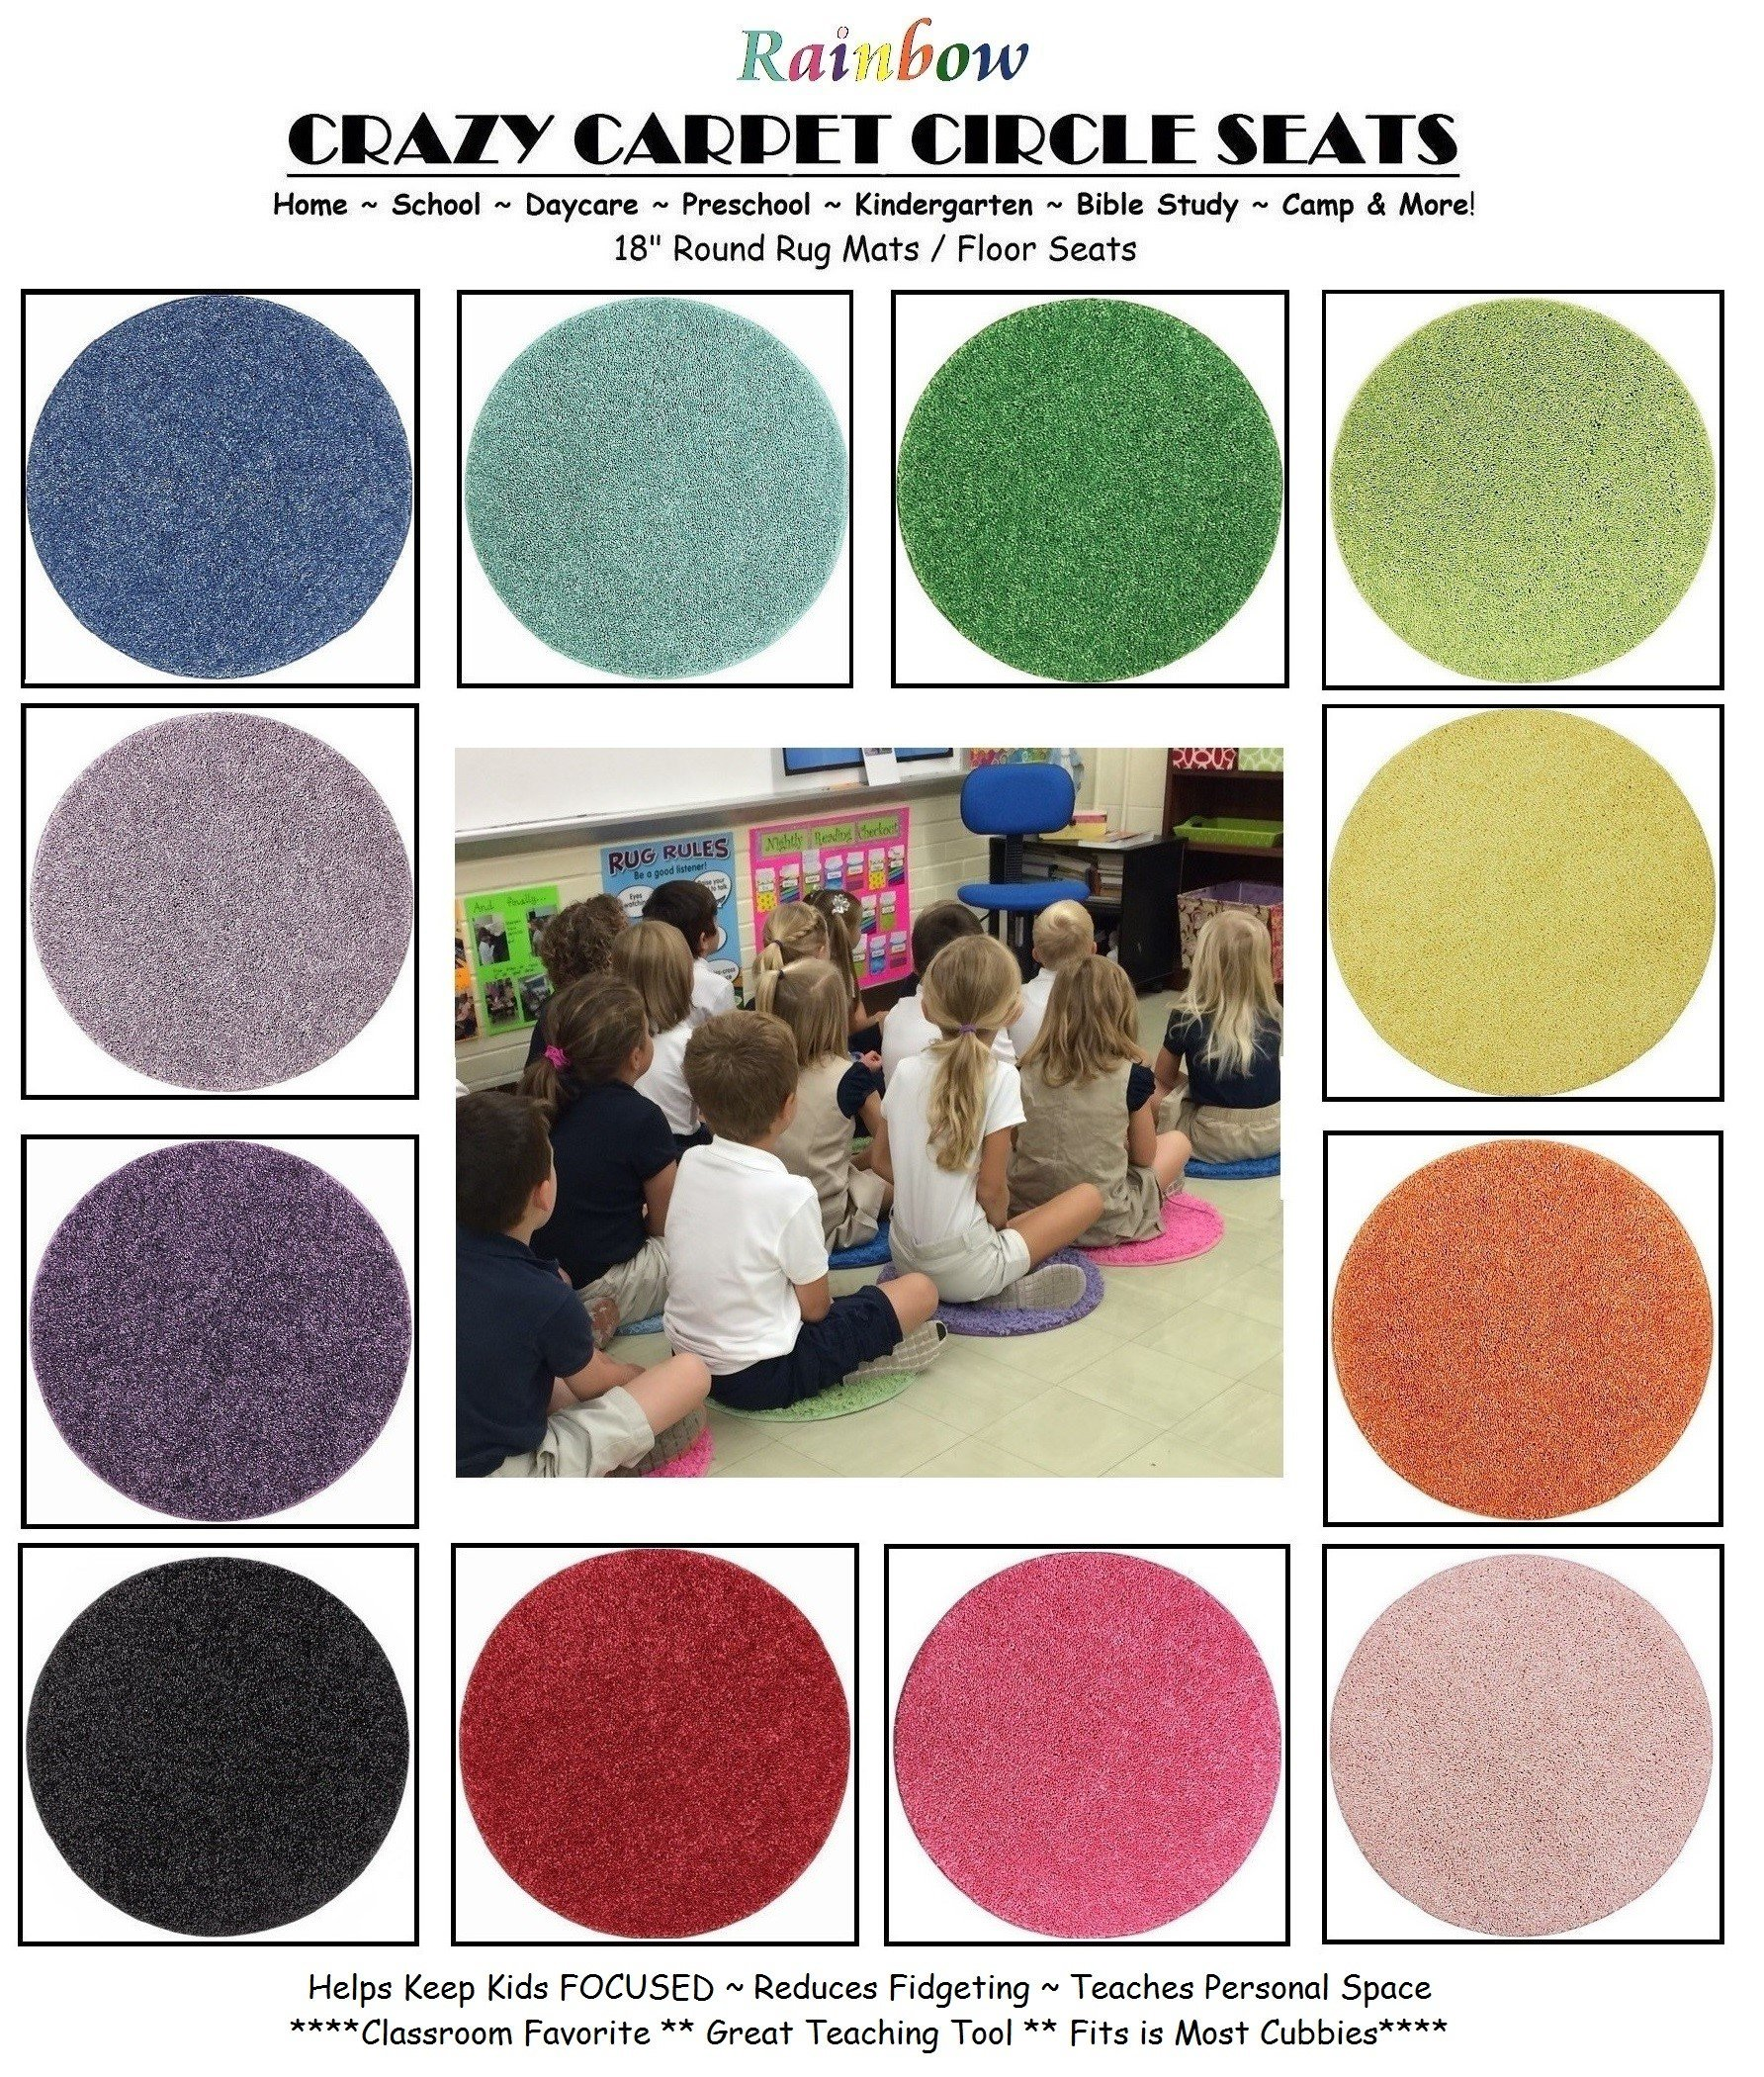 24 Rainbow Kids Crazy Carpet Circle Seats 18'' Round Soft Warm Floor Mat - Cushions   Classroom, Story Time, Group Activity, Time-Out Spot Marker and Fun. Home Bedroom & Play Areas by Children's Choice